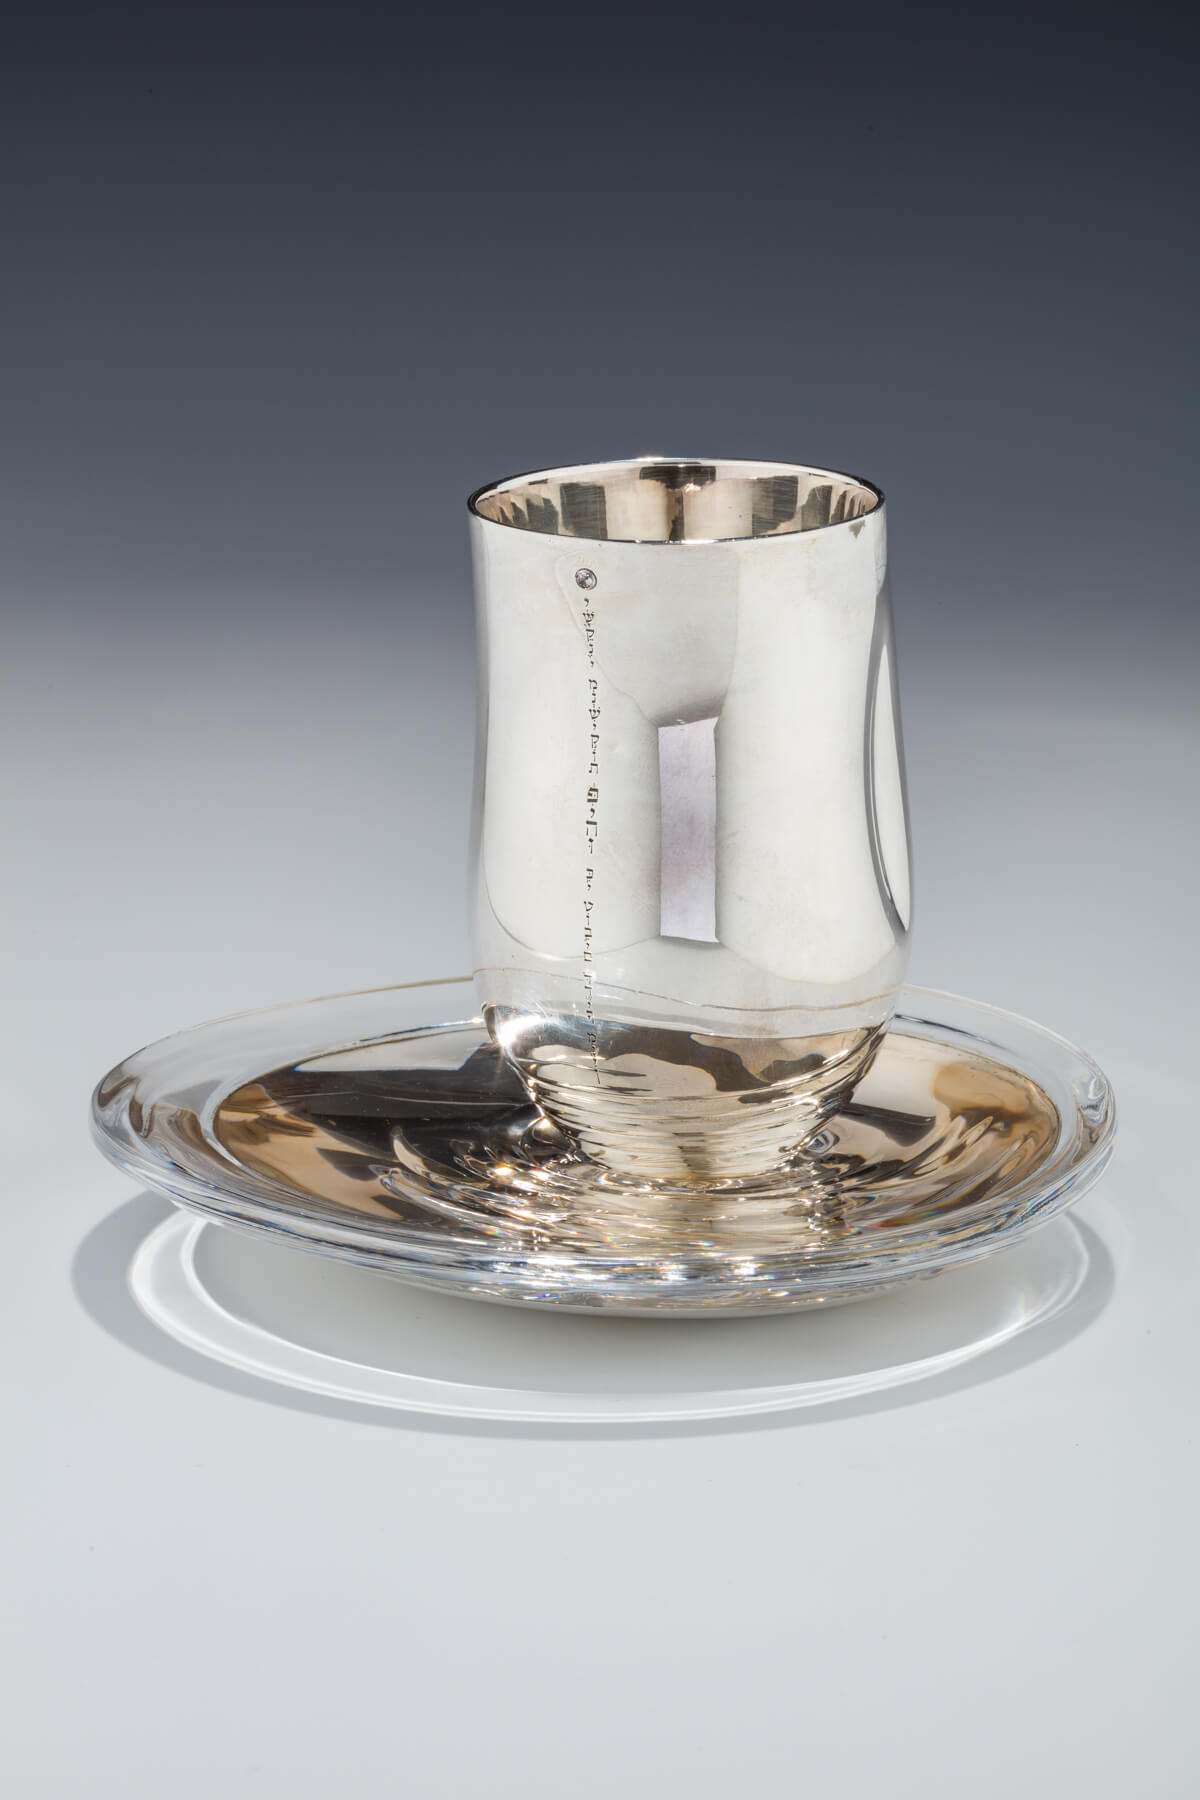 112. A Sterling Silver and Diamond-Encrusted Kiddush Cup and Underplate by Anvehu